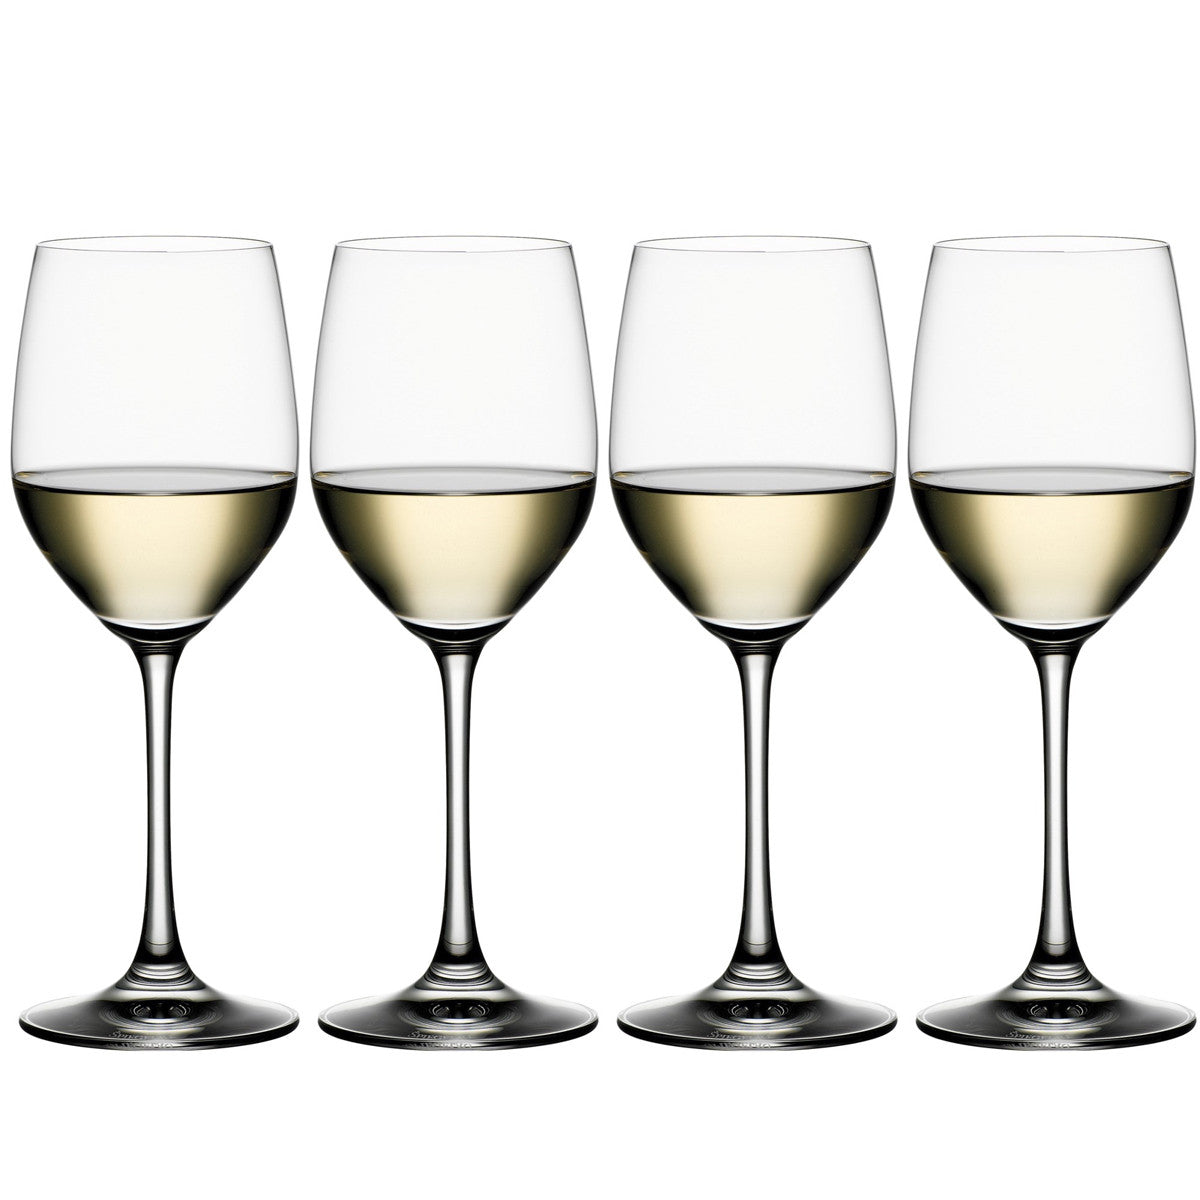 Vino Grande White Wine Glasses / Set 4